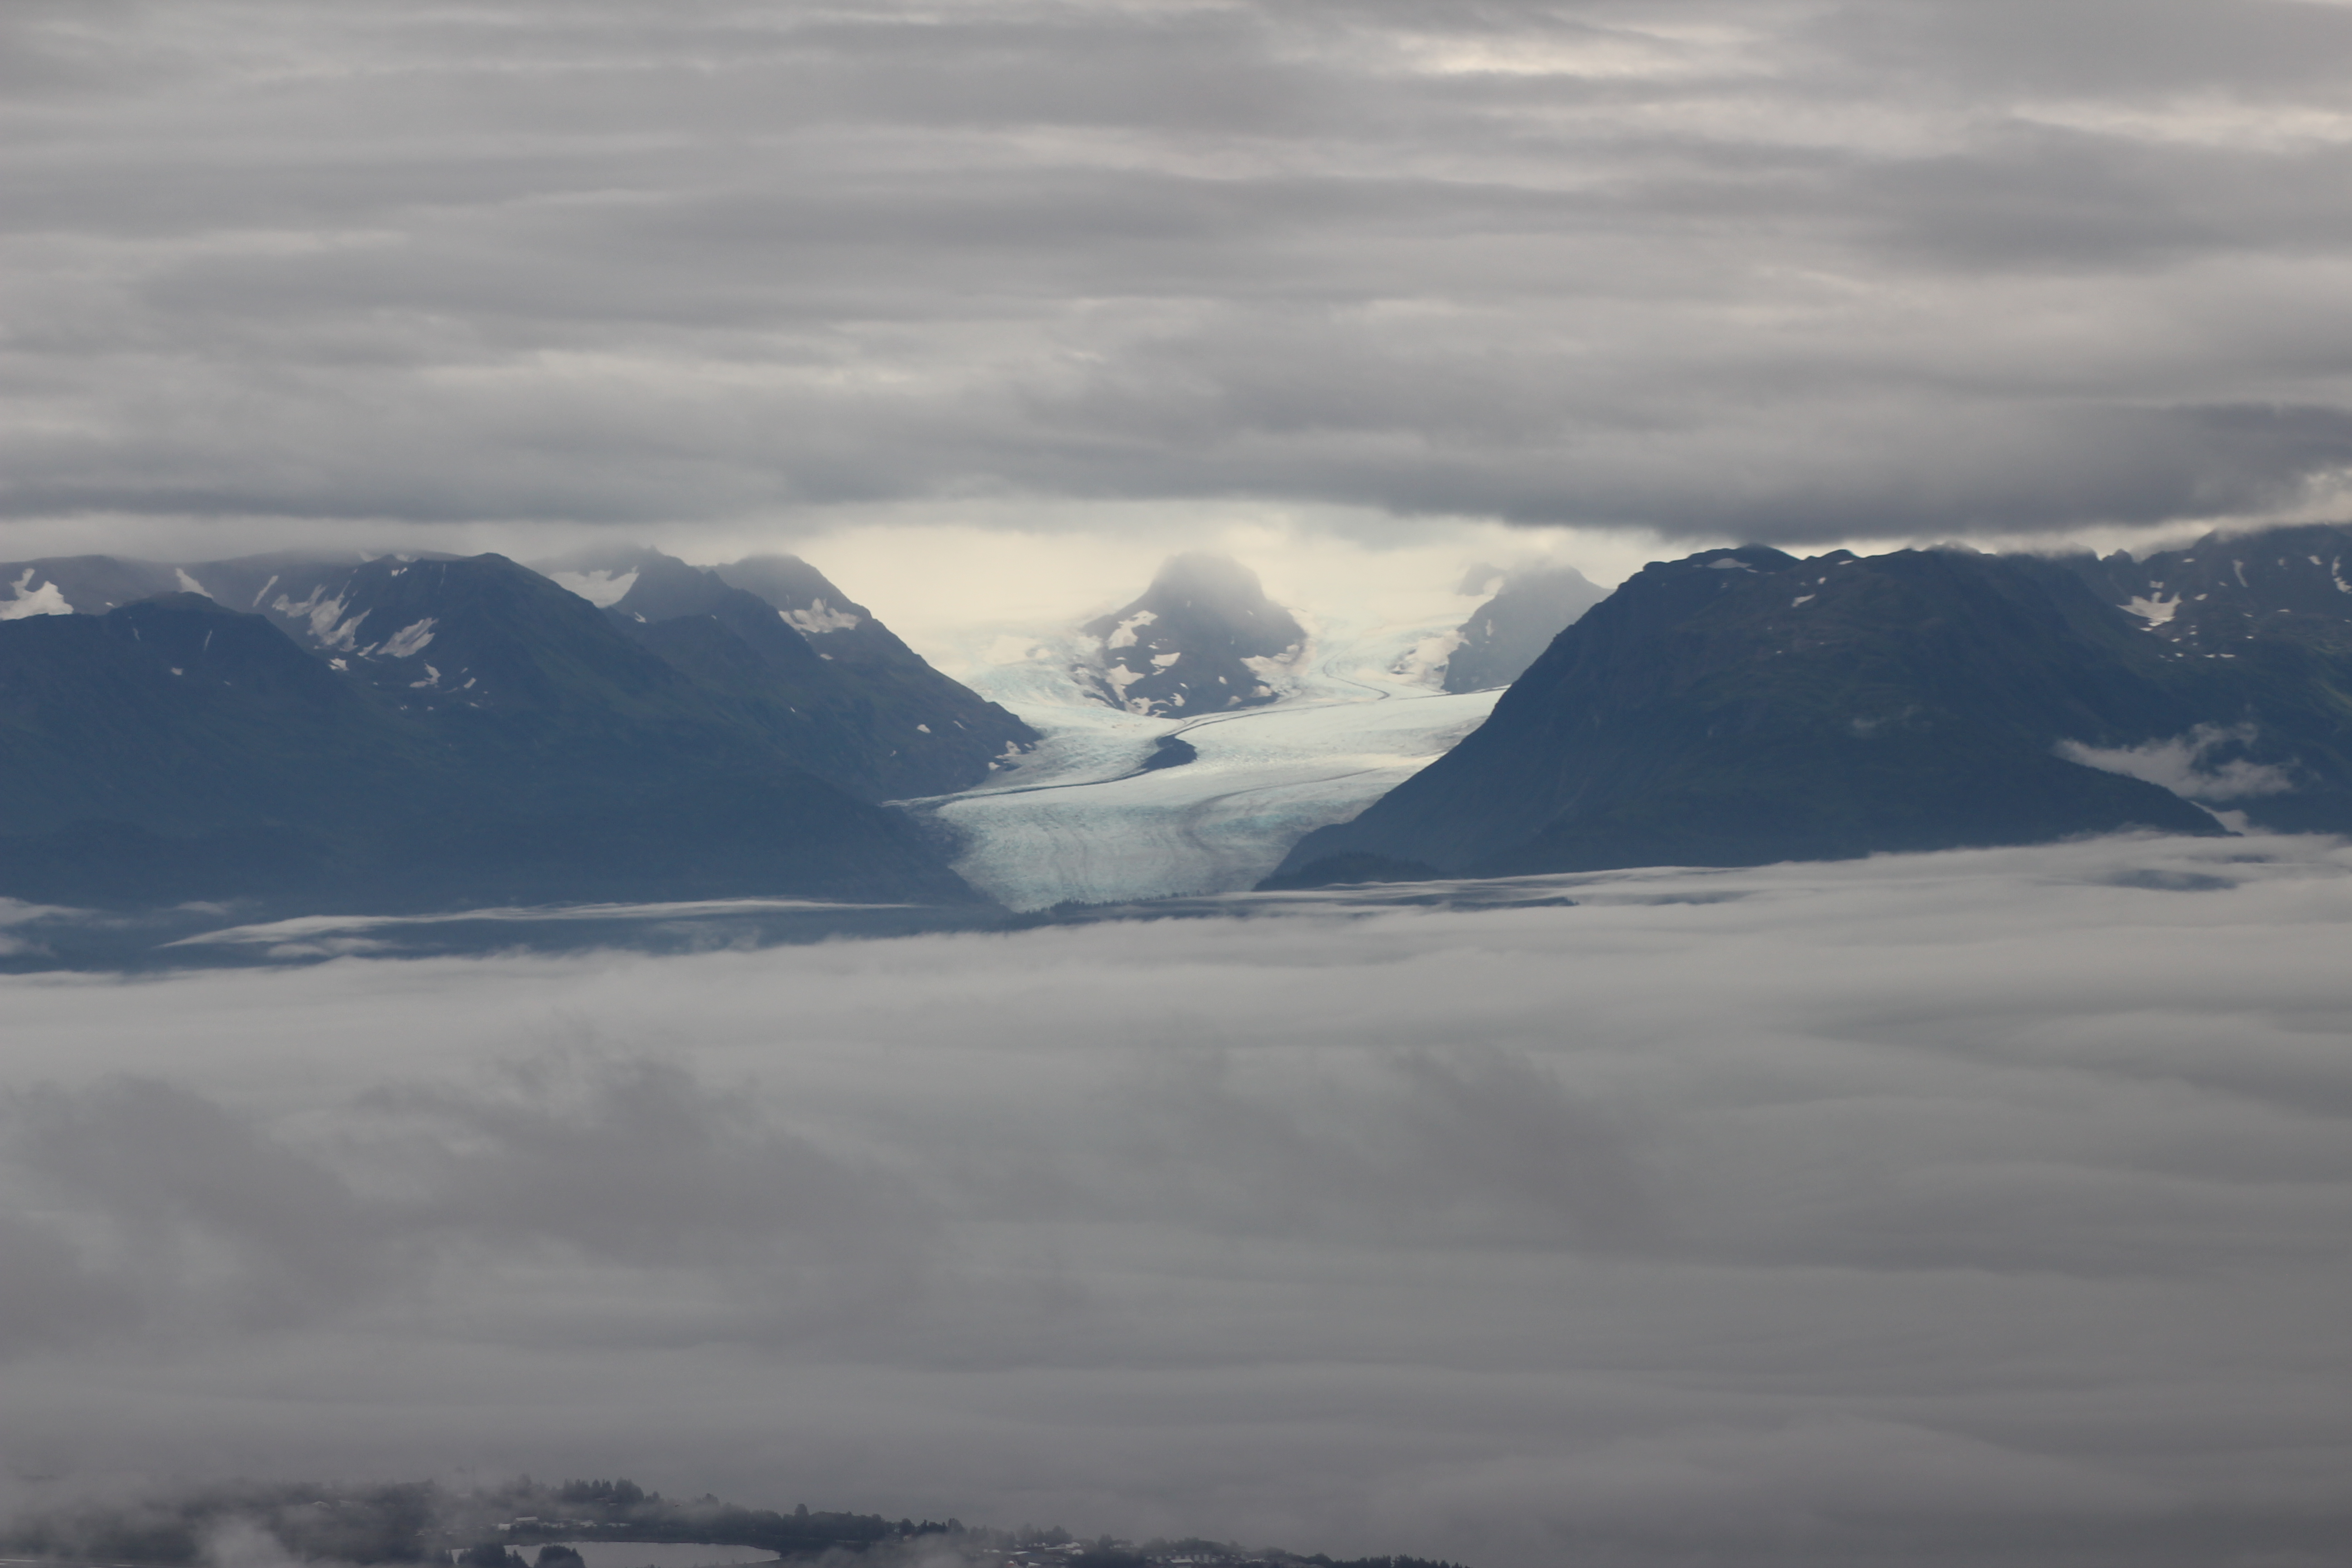 A slightly eerie view across the fog-covered Kachemak Bay to Grewingk Glacier with the coast between Fritz Creek and Kachemak/Miller's Landing just visible along the bottom of the image to the left.